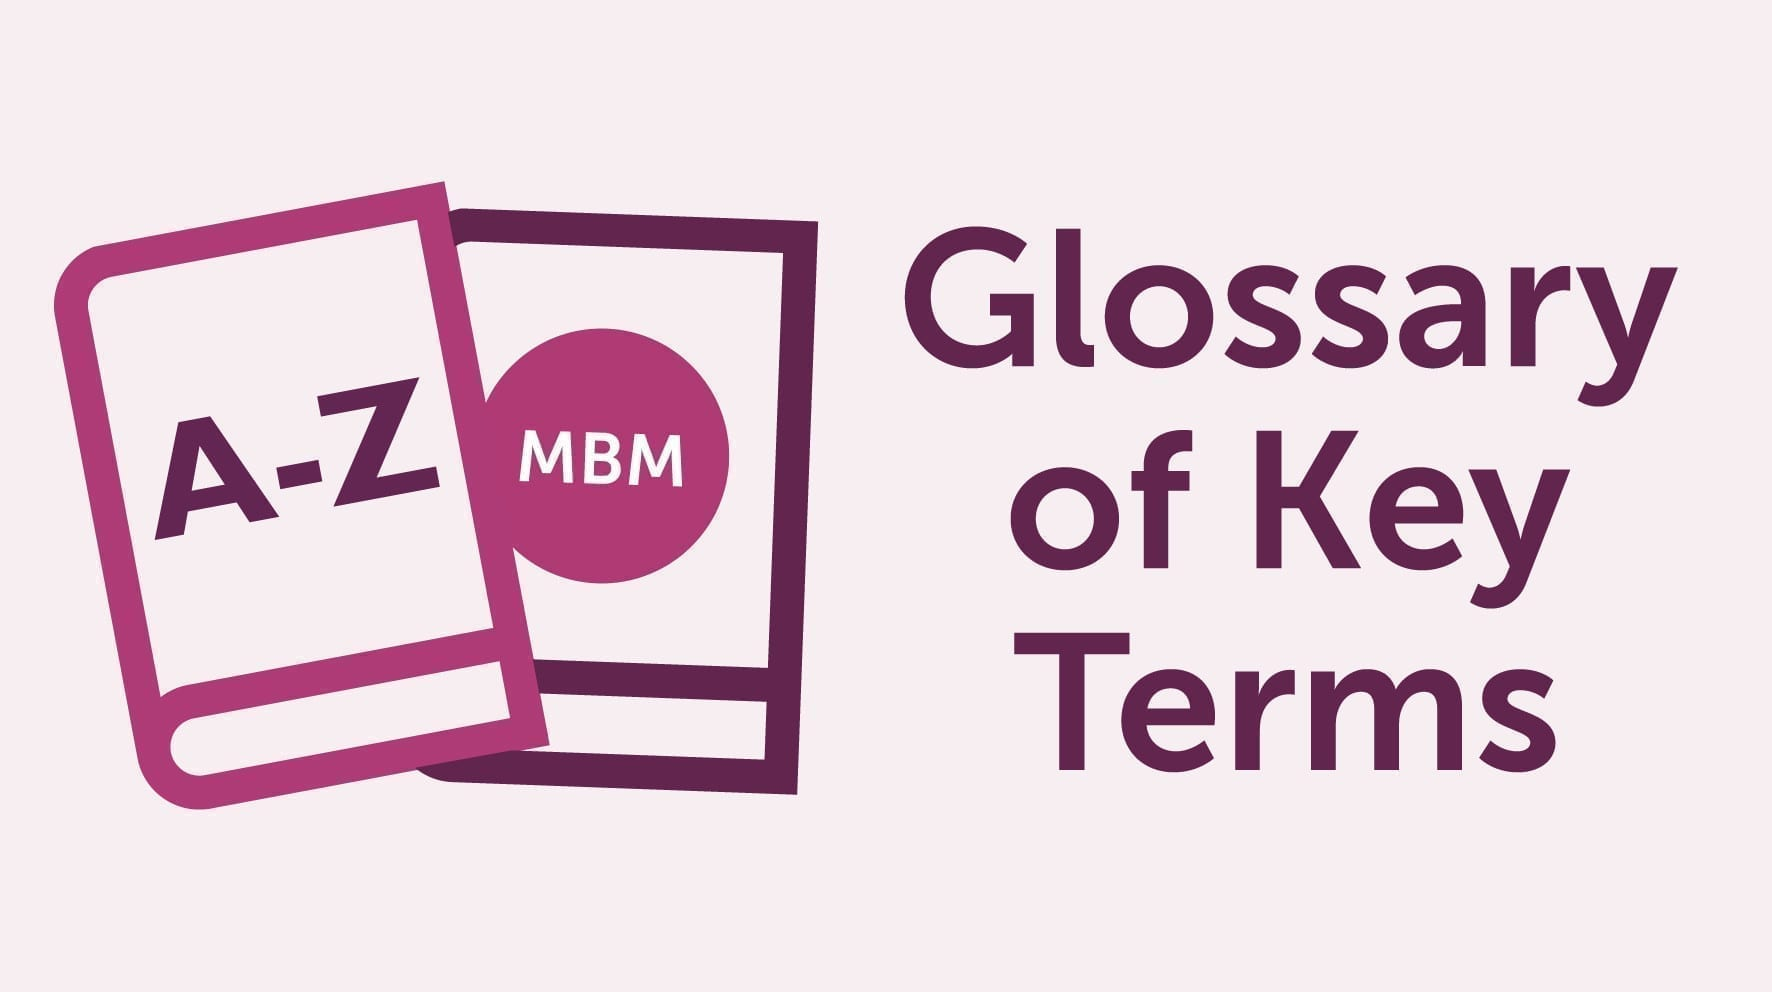 Category Management Definition & Glossary of Terms